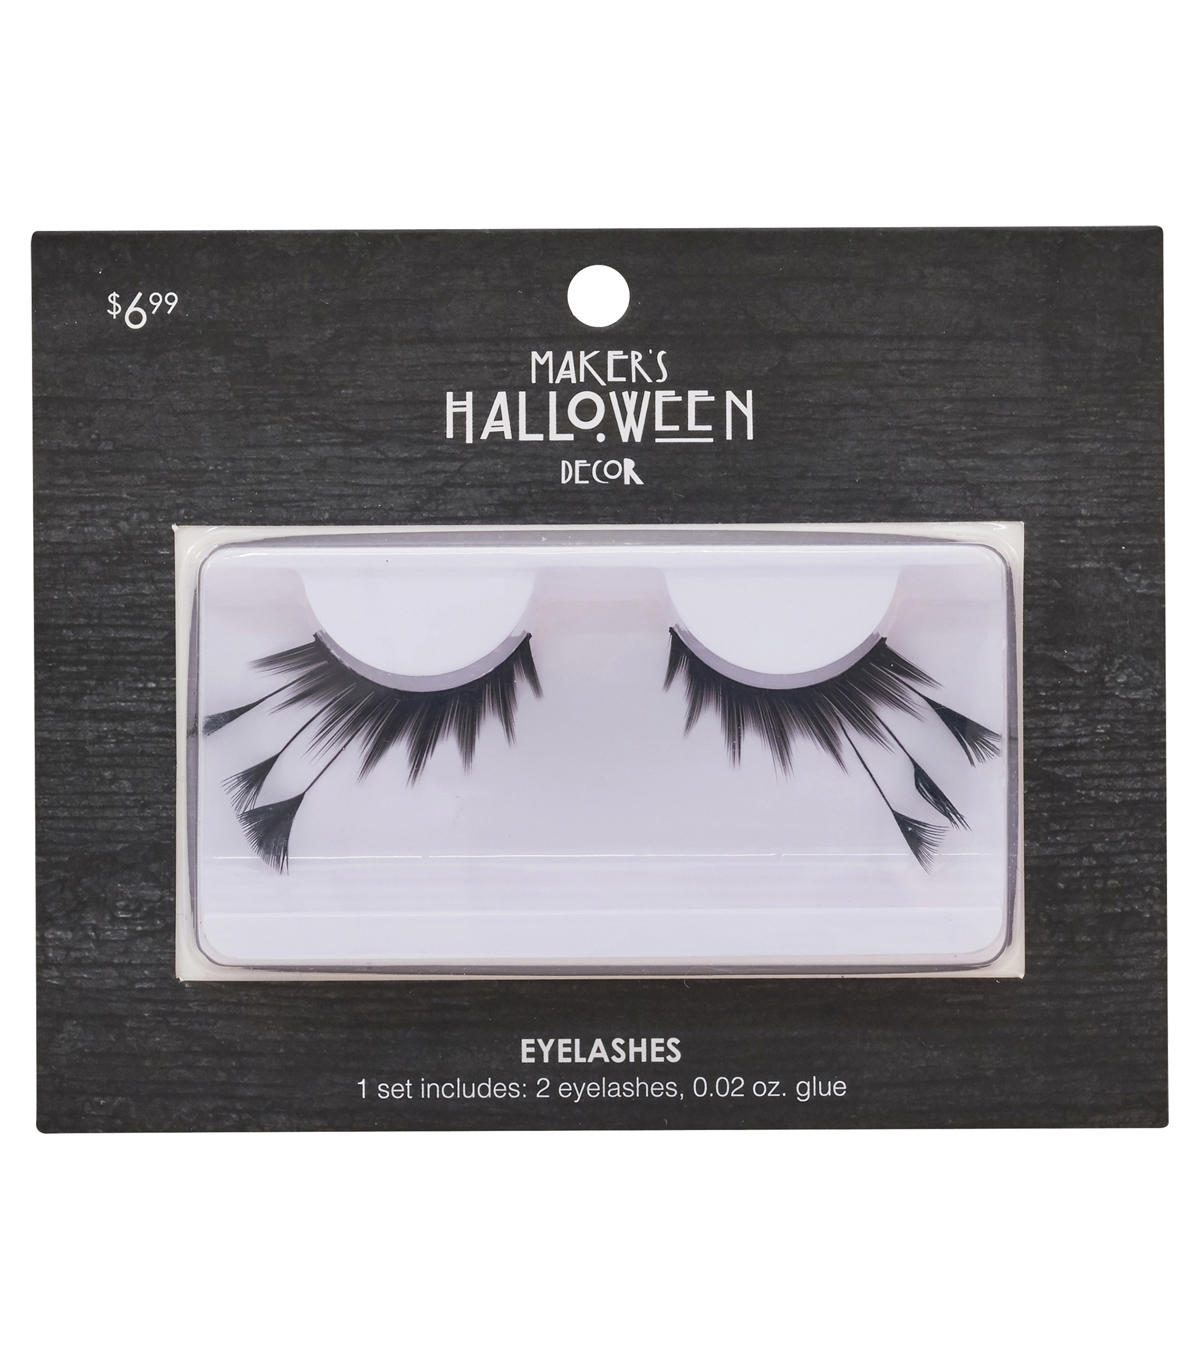 Makers Halloween Eyelashes With Long Feathers Glue Black Joann